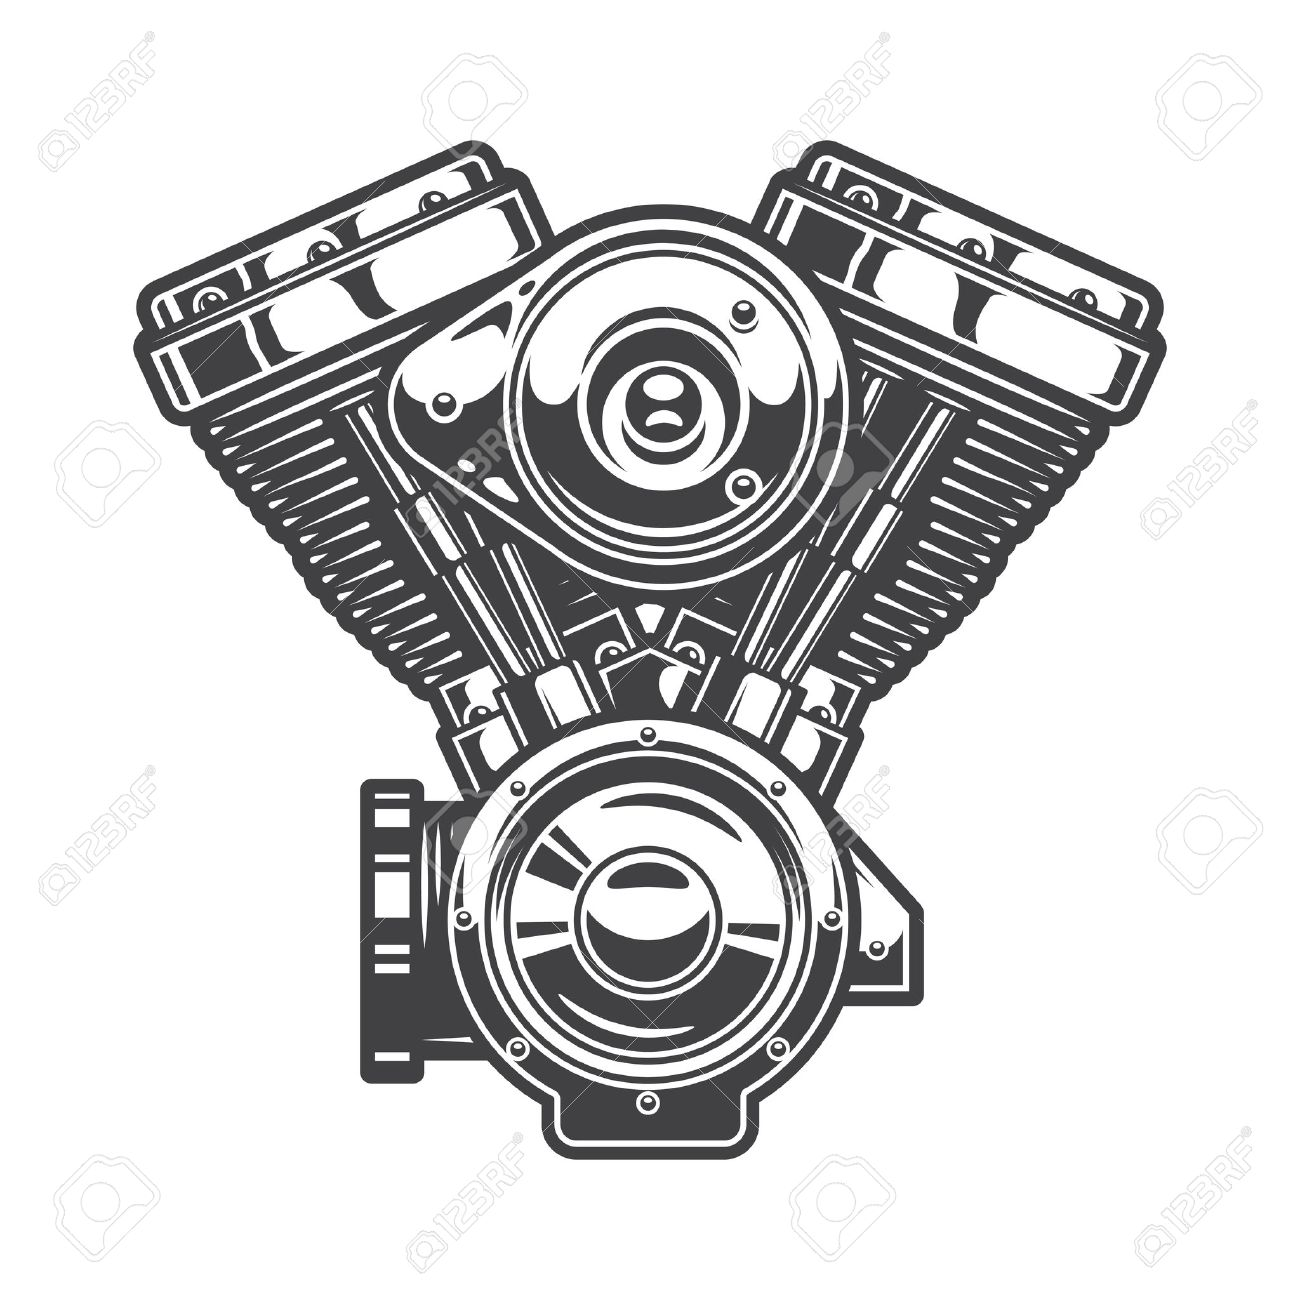 1300x1300 Illustration Of Motorcycle Engine. Monochrome Style Royalty Free